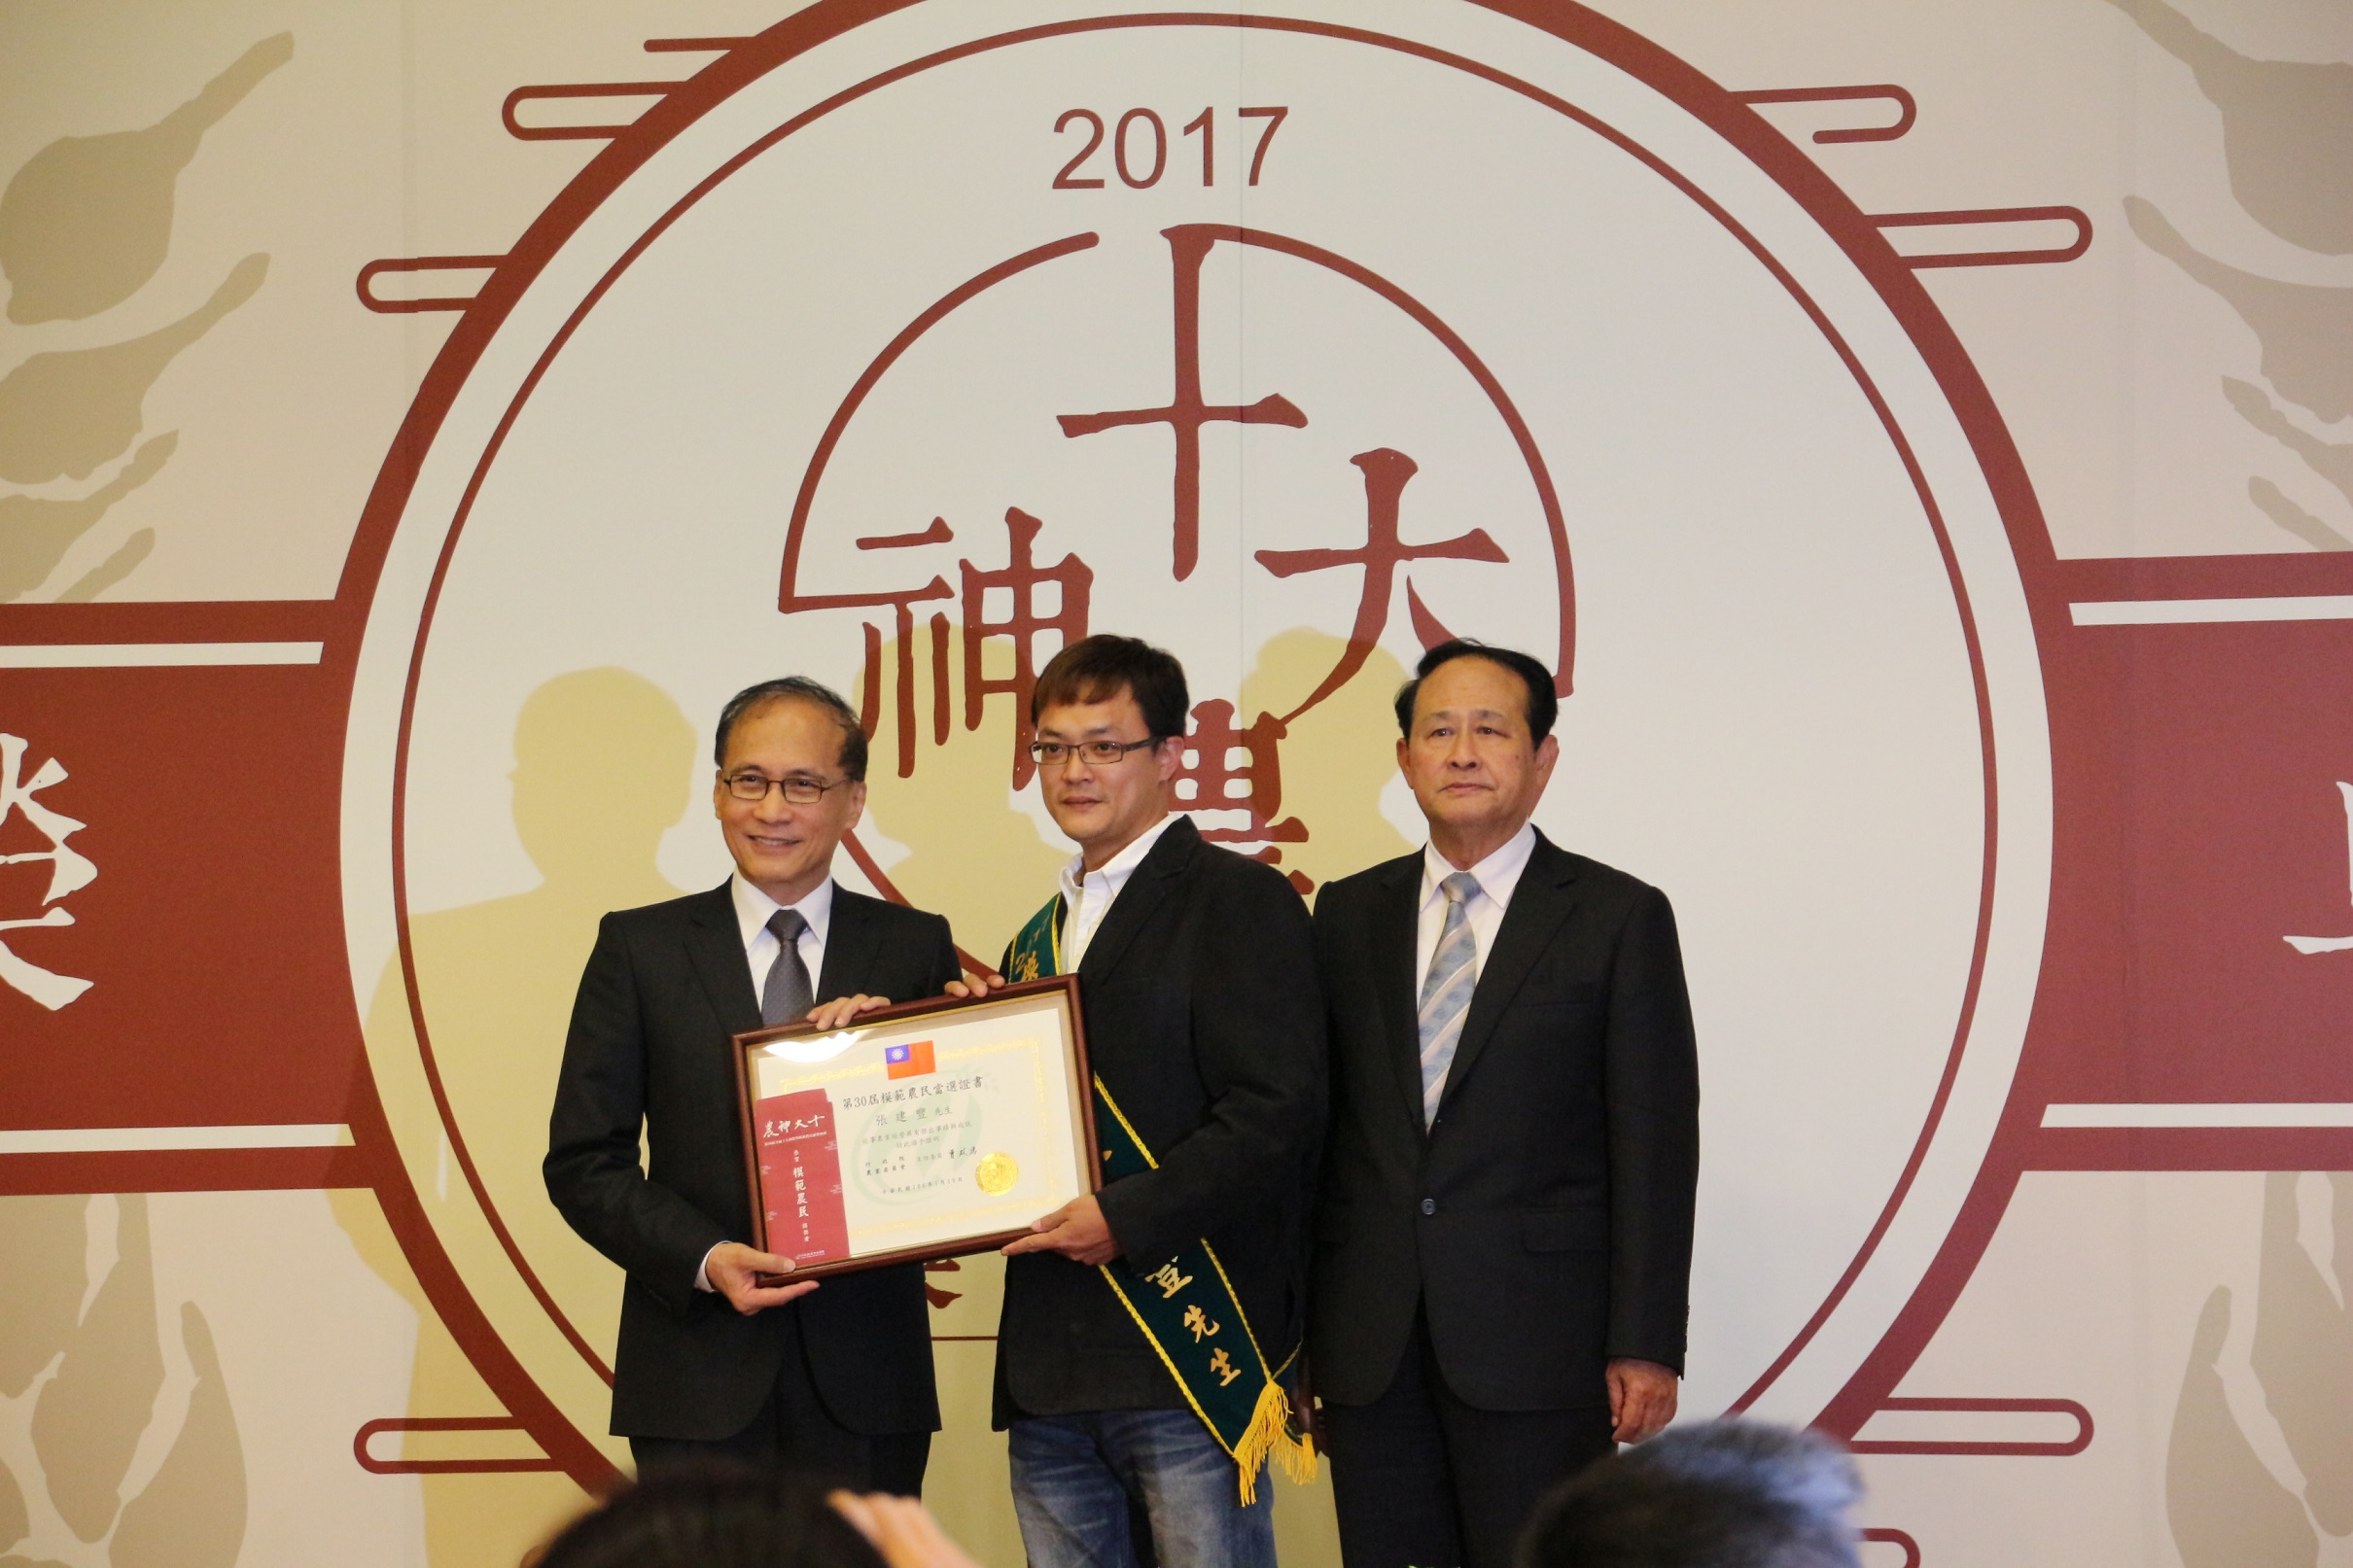 The photo shows egg producer Chang Chien-feng (center) receiving award from Premier Lin Chuan (left) and agricultural minister Tsao Chi-hung (right). (Taiwan News Photo by Sophia Yang)